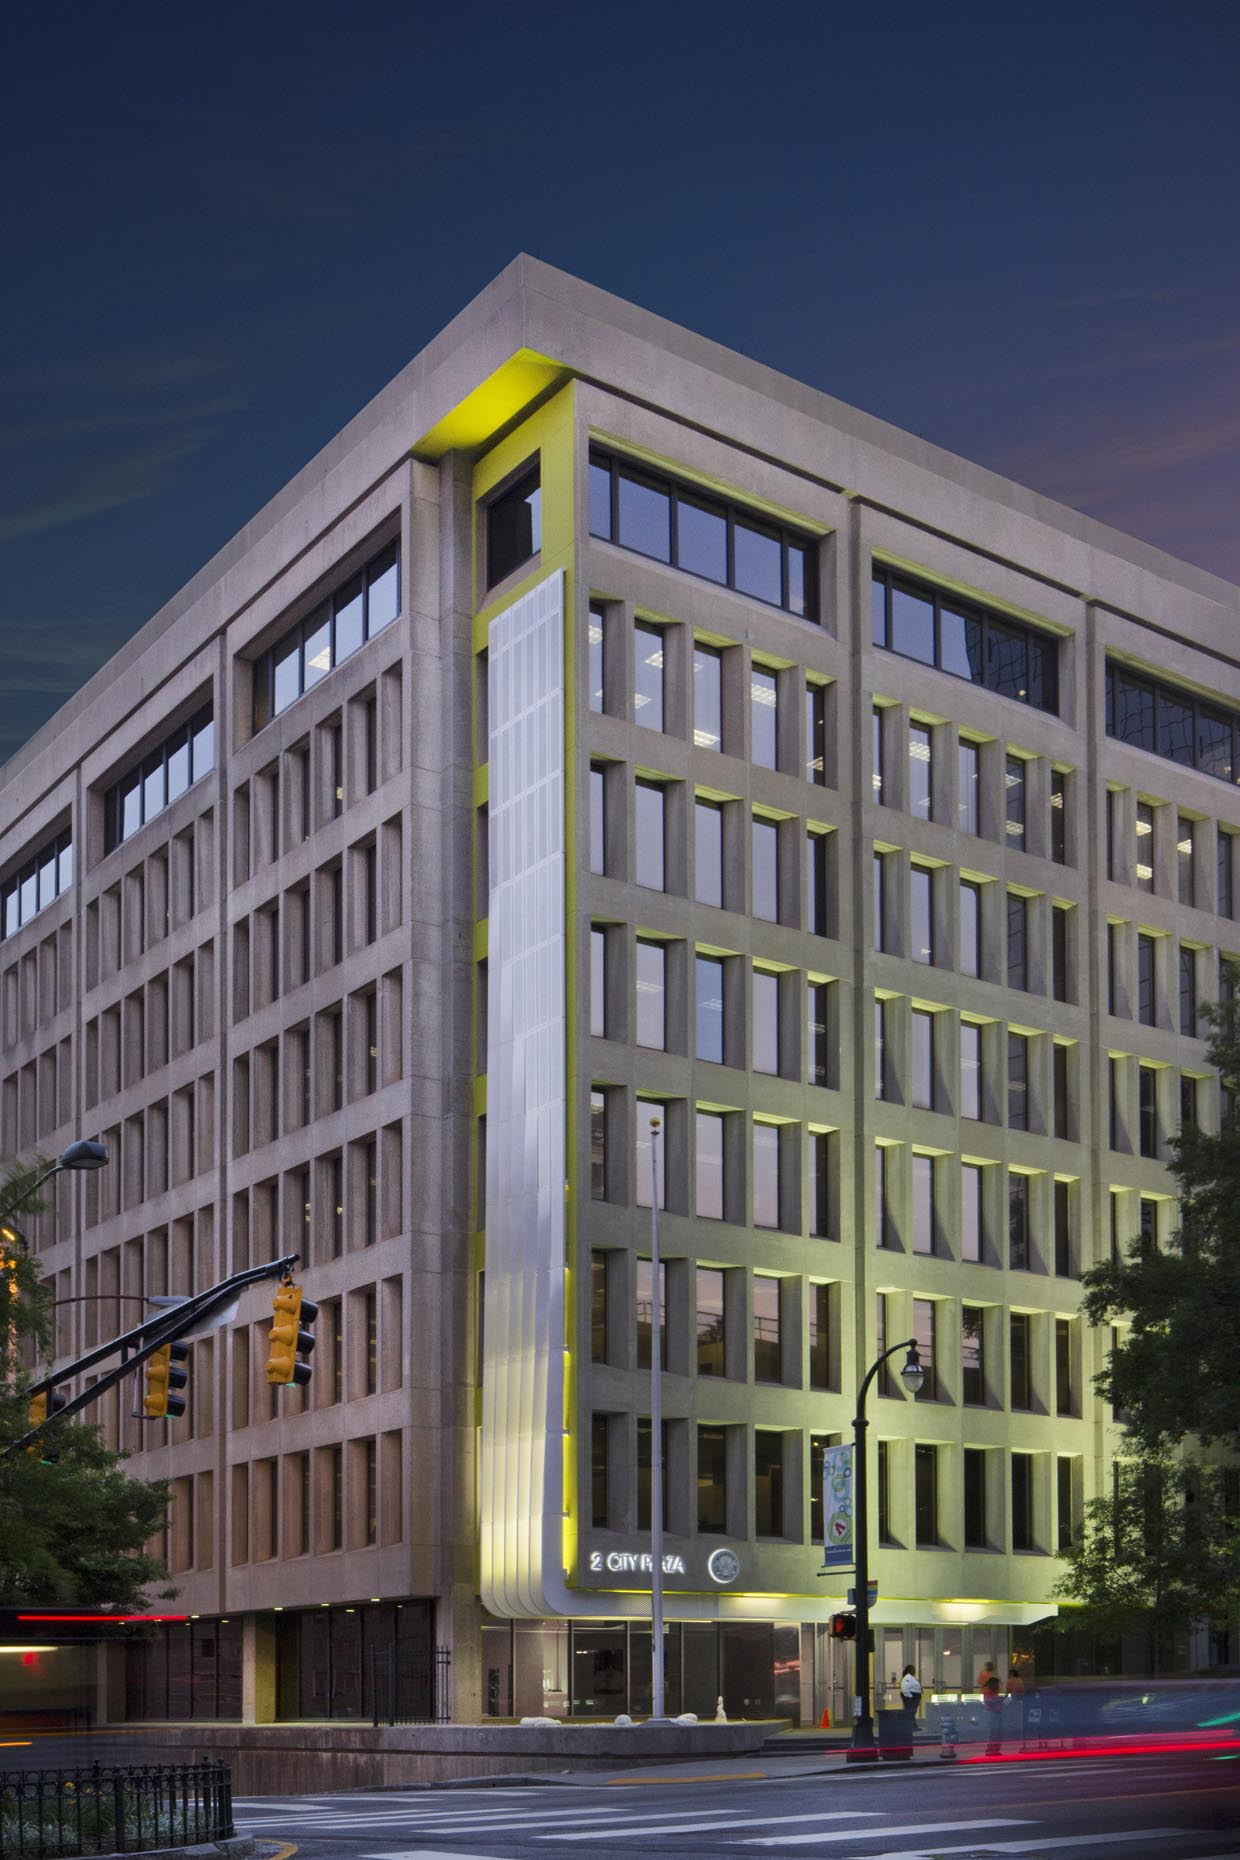 City of Atlanta - Gallery 72 // Clients: Image Manufacturing Group & Stanley Beaman Sears Architects